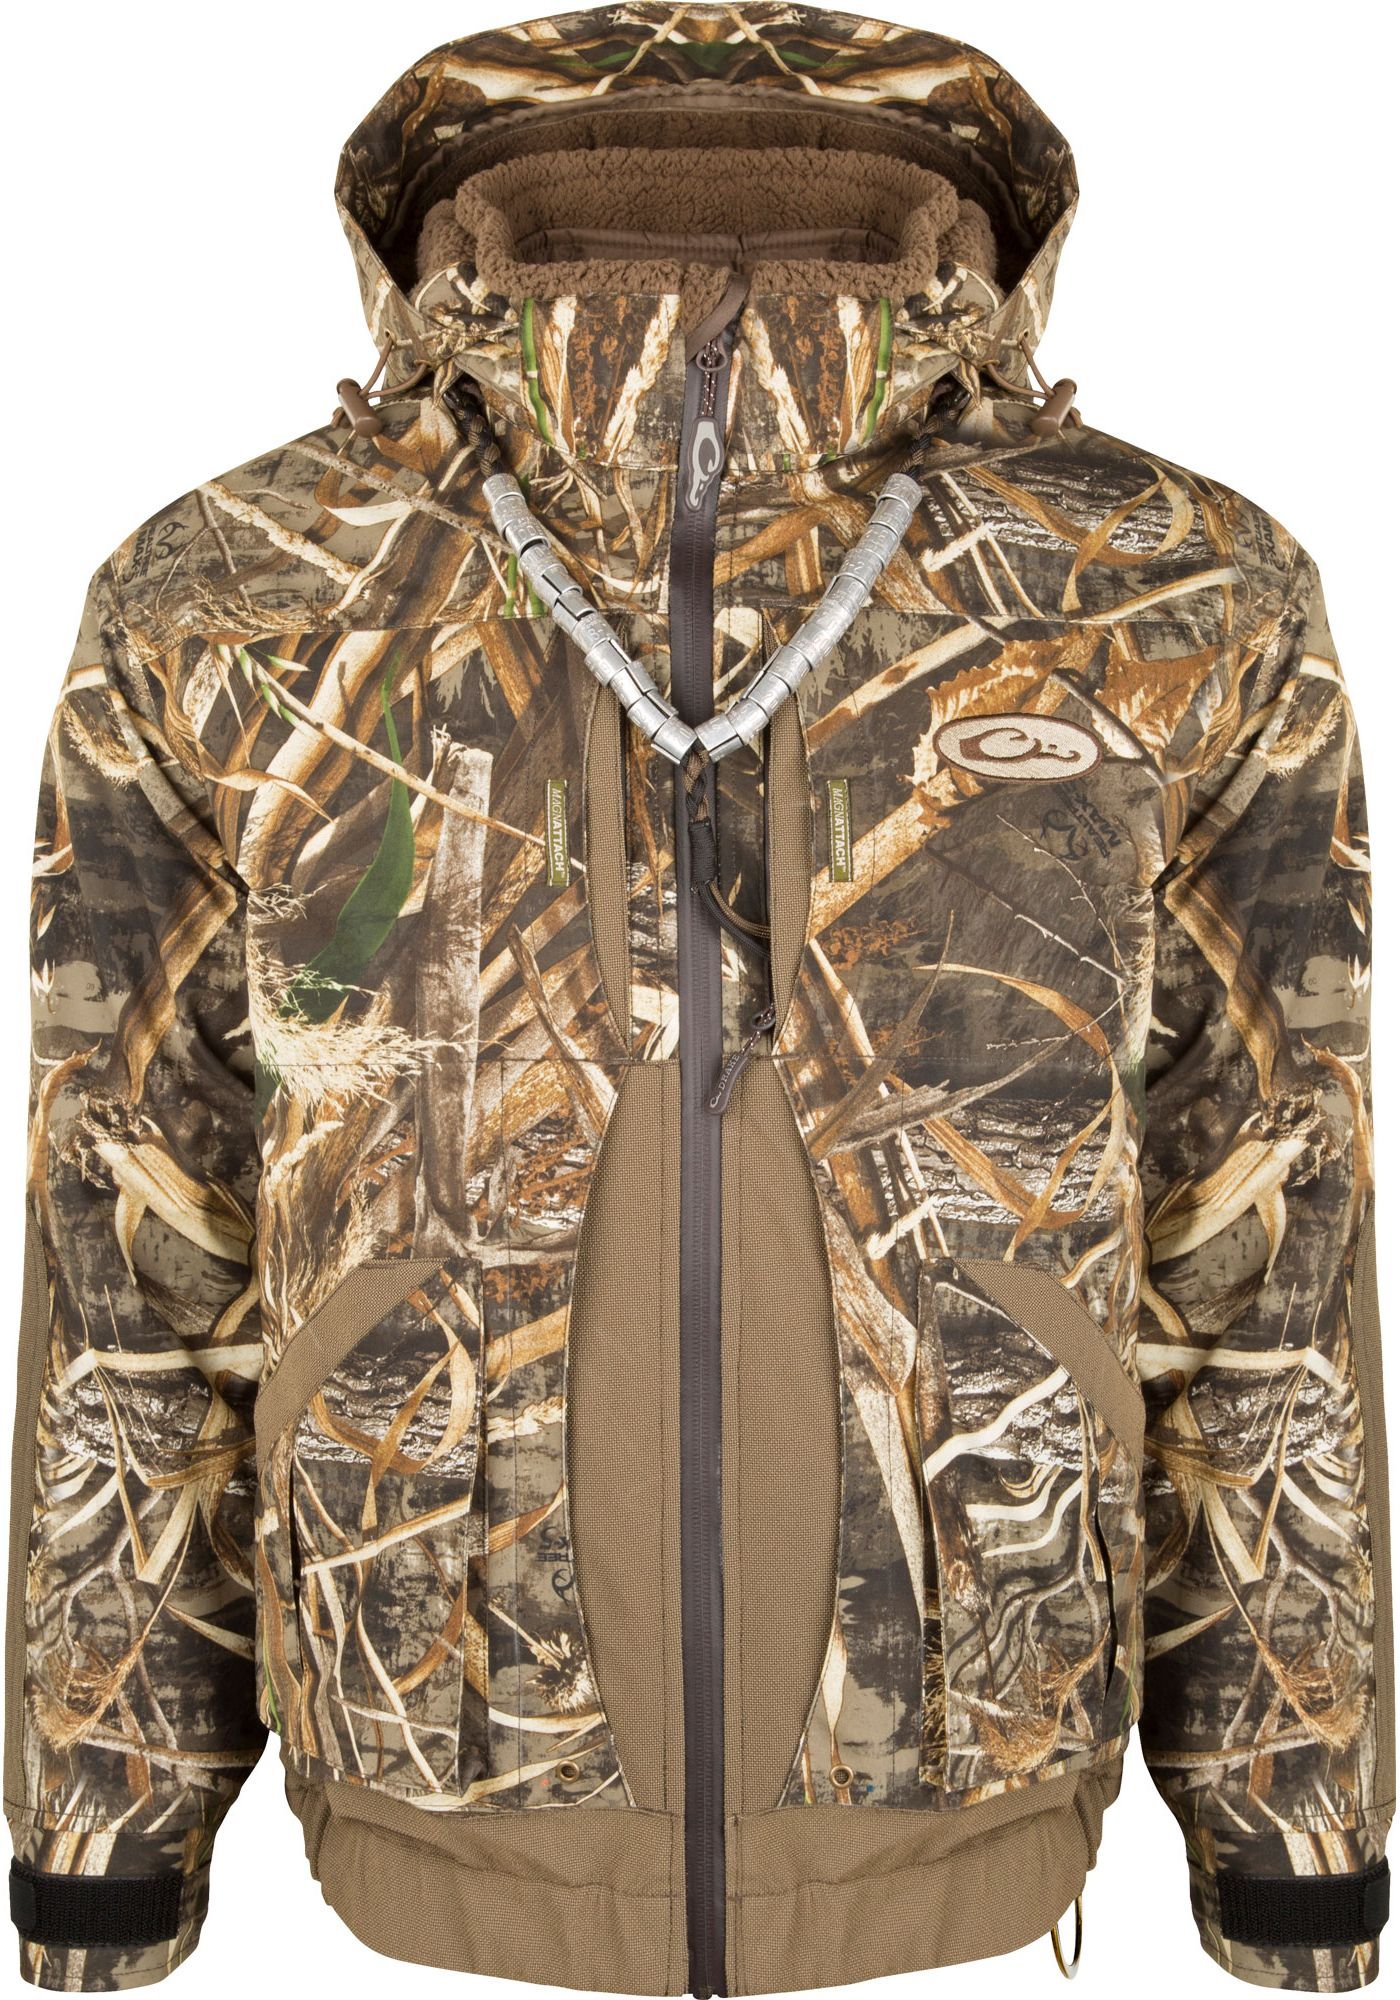 Drake Waterfowl Men's Guardian Elite Boat & Blind Insulated Hunting Jacket